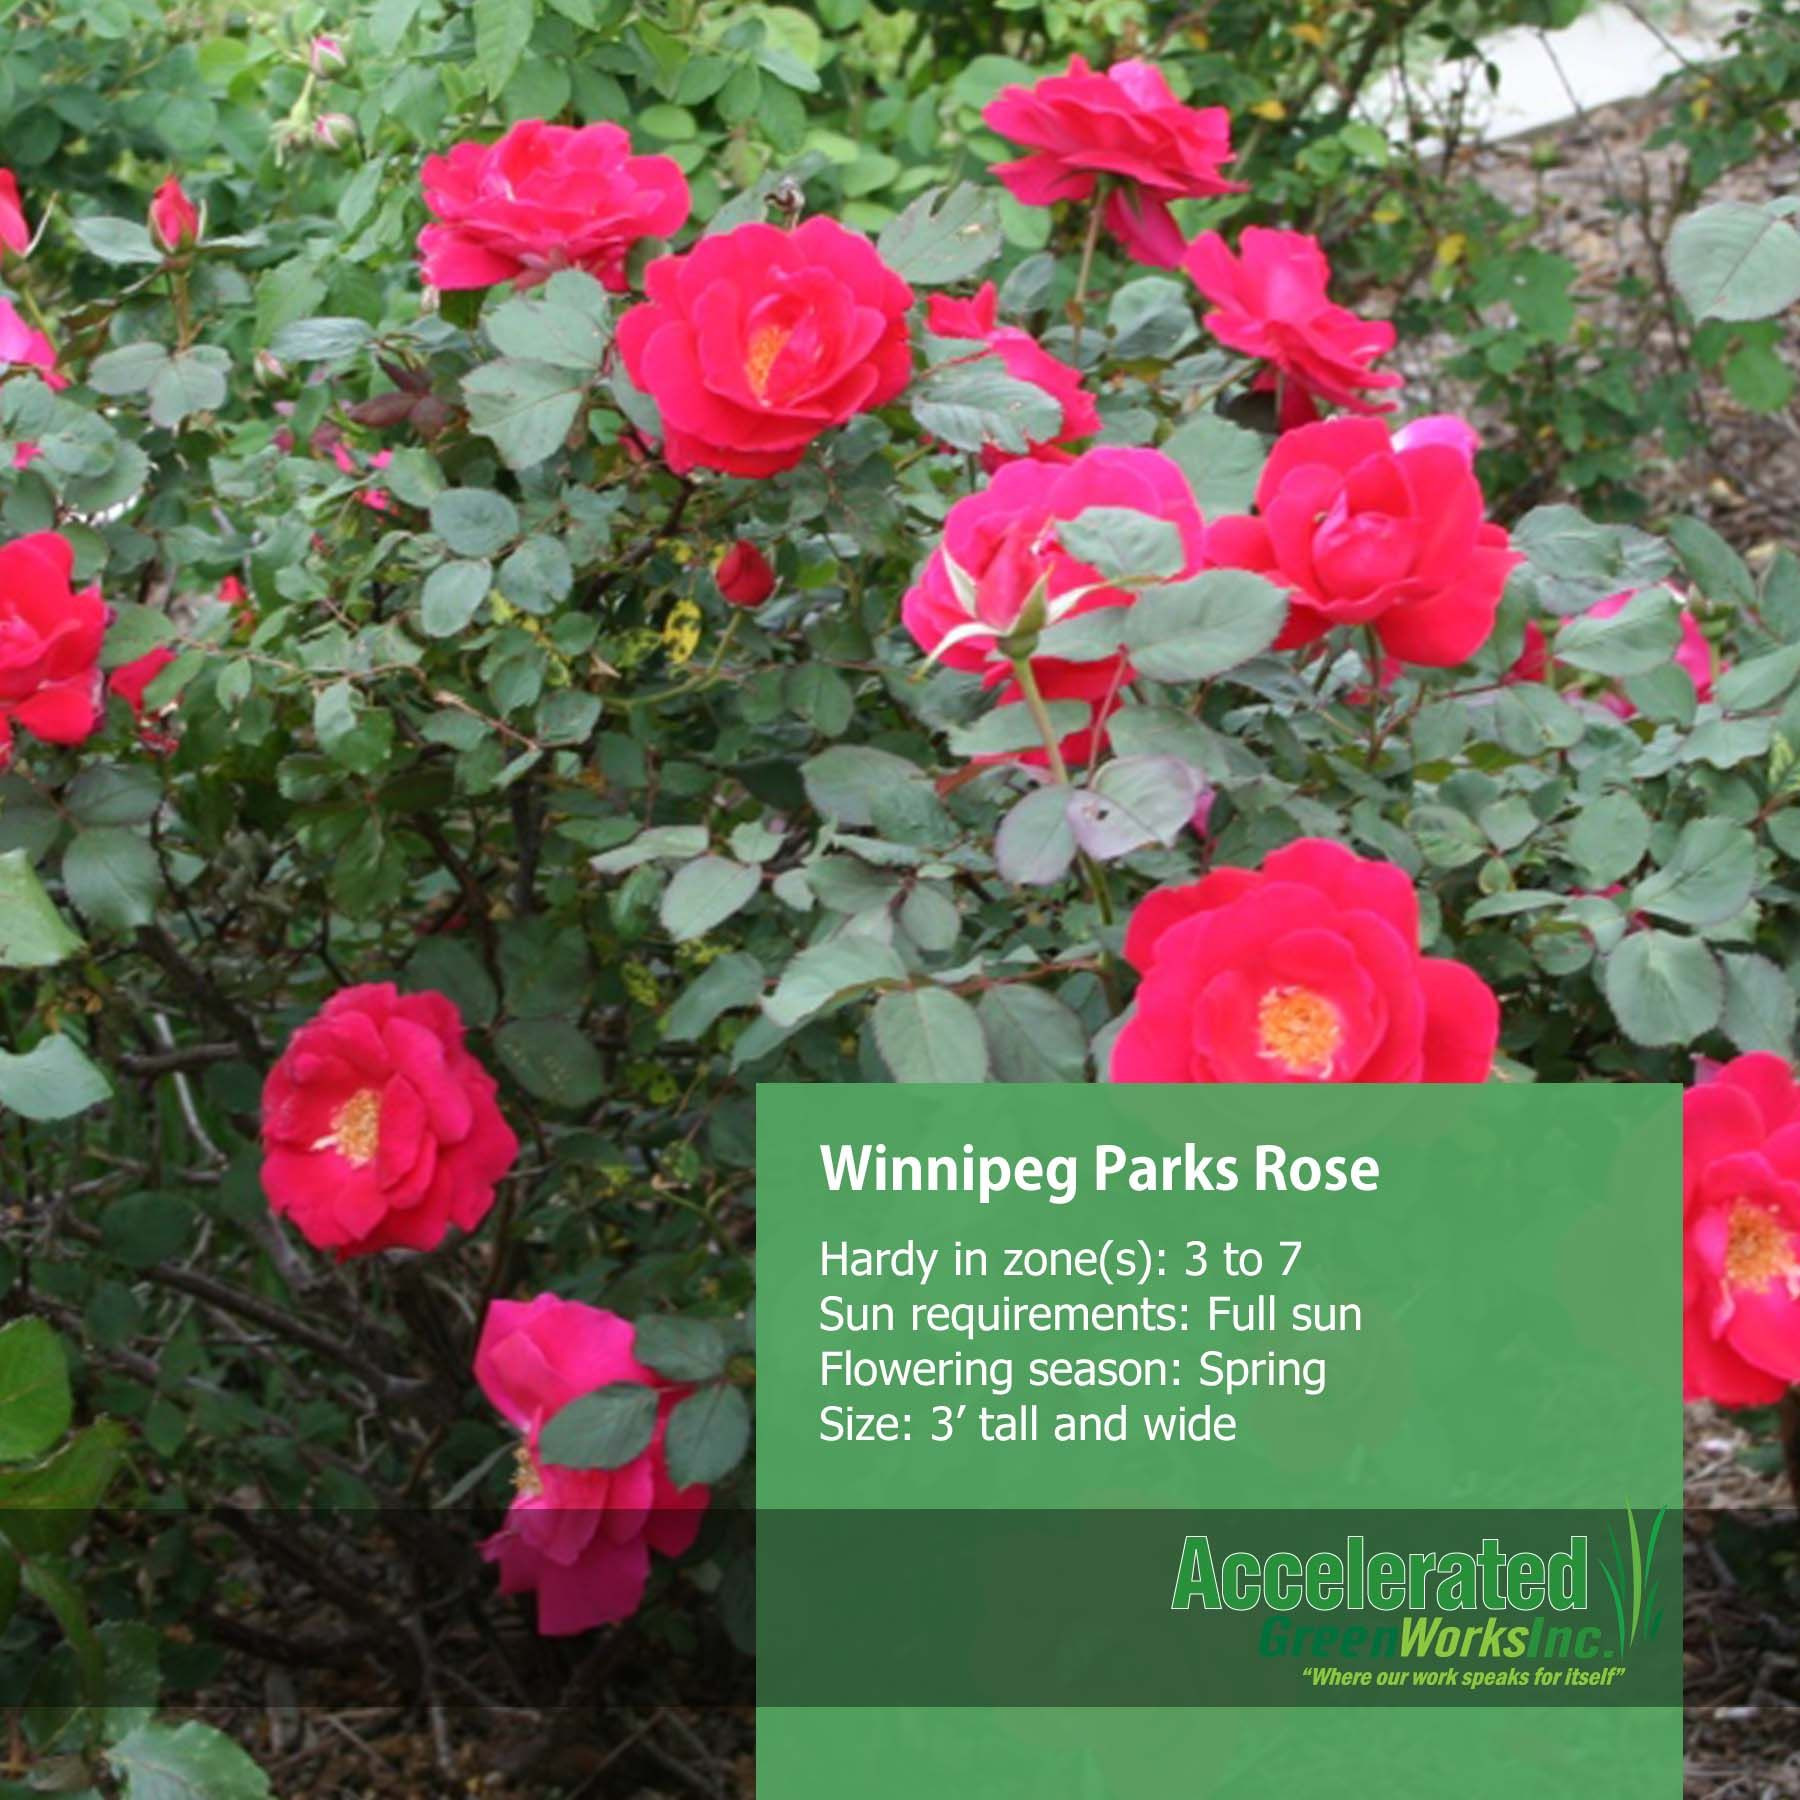 Winnipeg Parks Rose Lightly Scented Cherry Red Flowers Blooms From